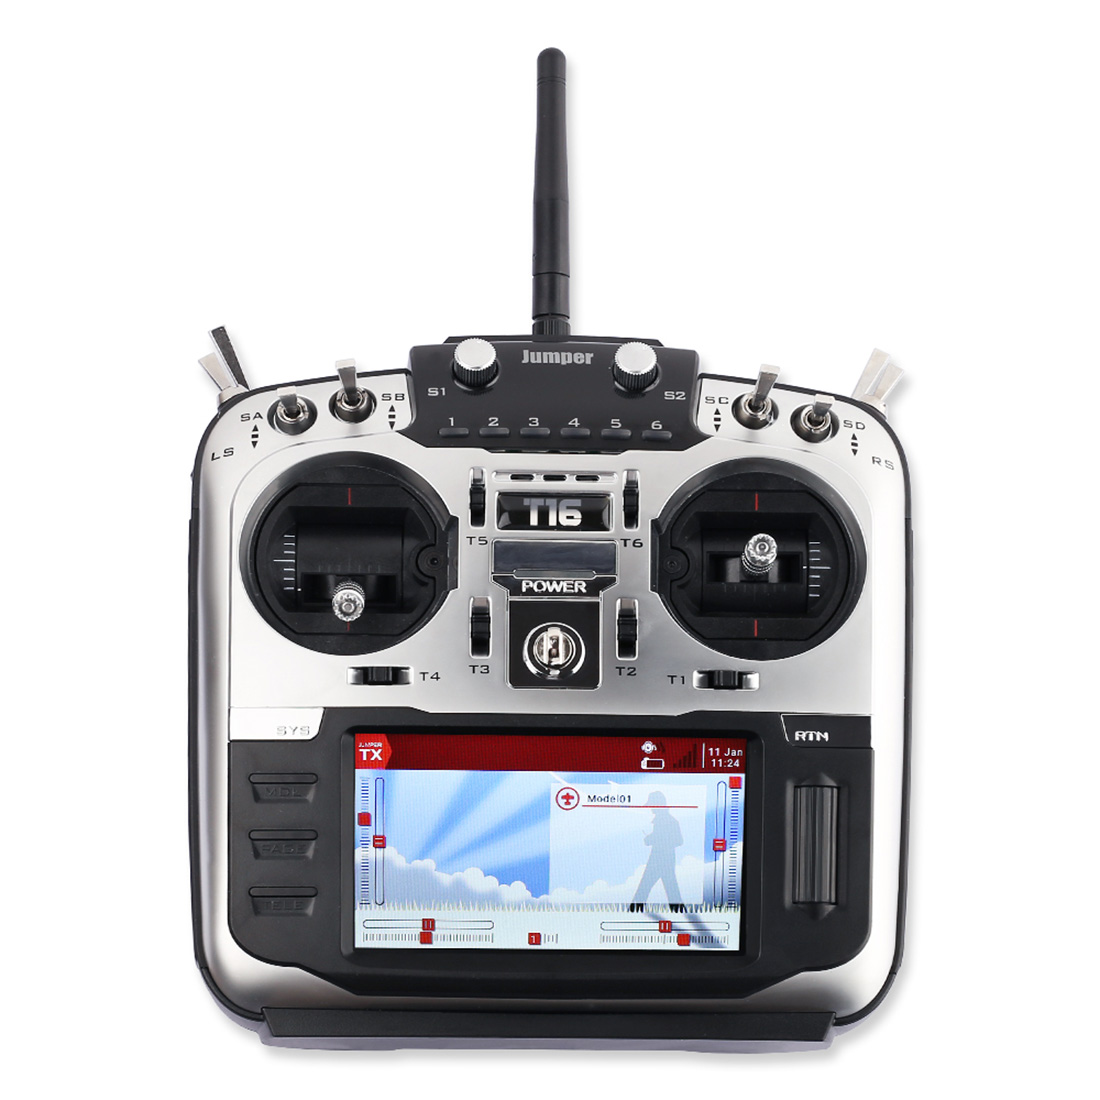 "Jumper  T16 Pro T16 PlusTransmitter with JP4 in 1 RF Modul Open Source Multi protocol Radio 2.4G 16CH 4.3"" LCD for FPV Drone-in Parts & Accessories from Toys & Hobbies"